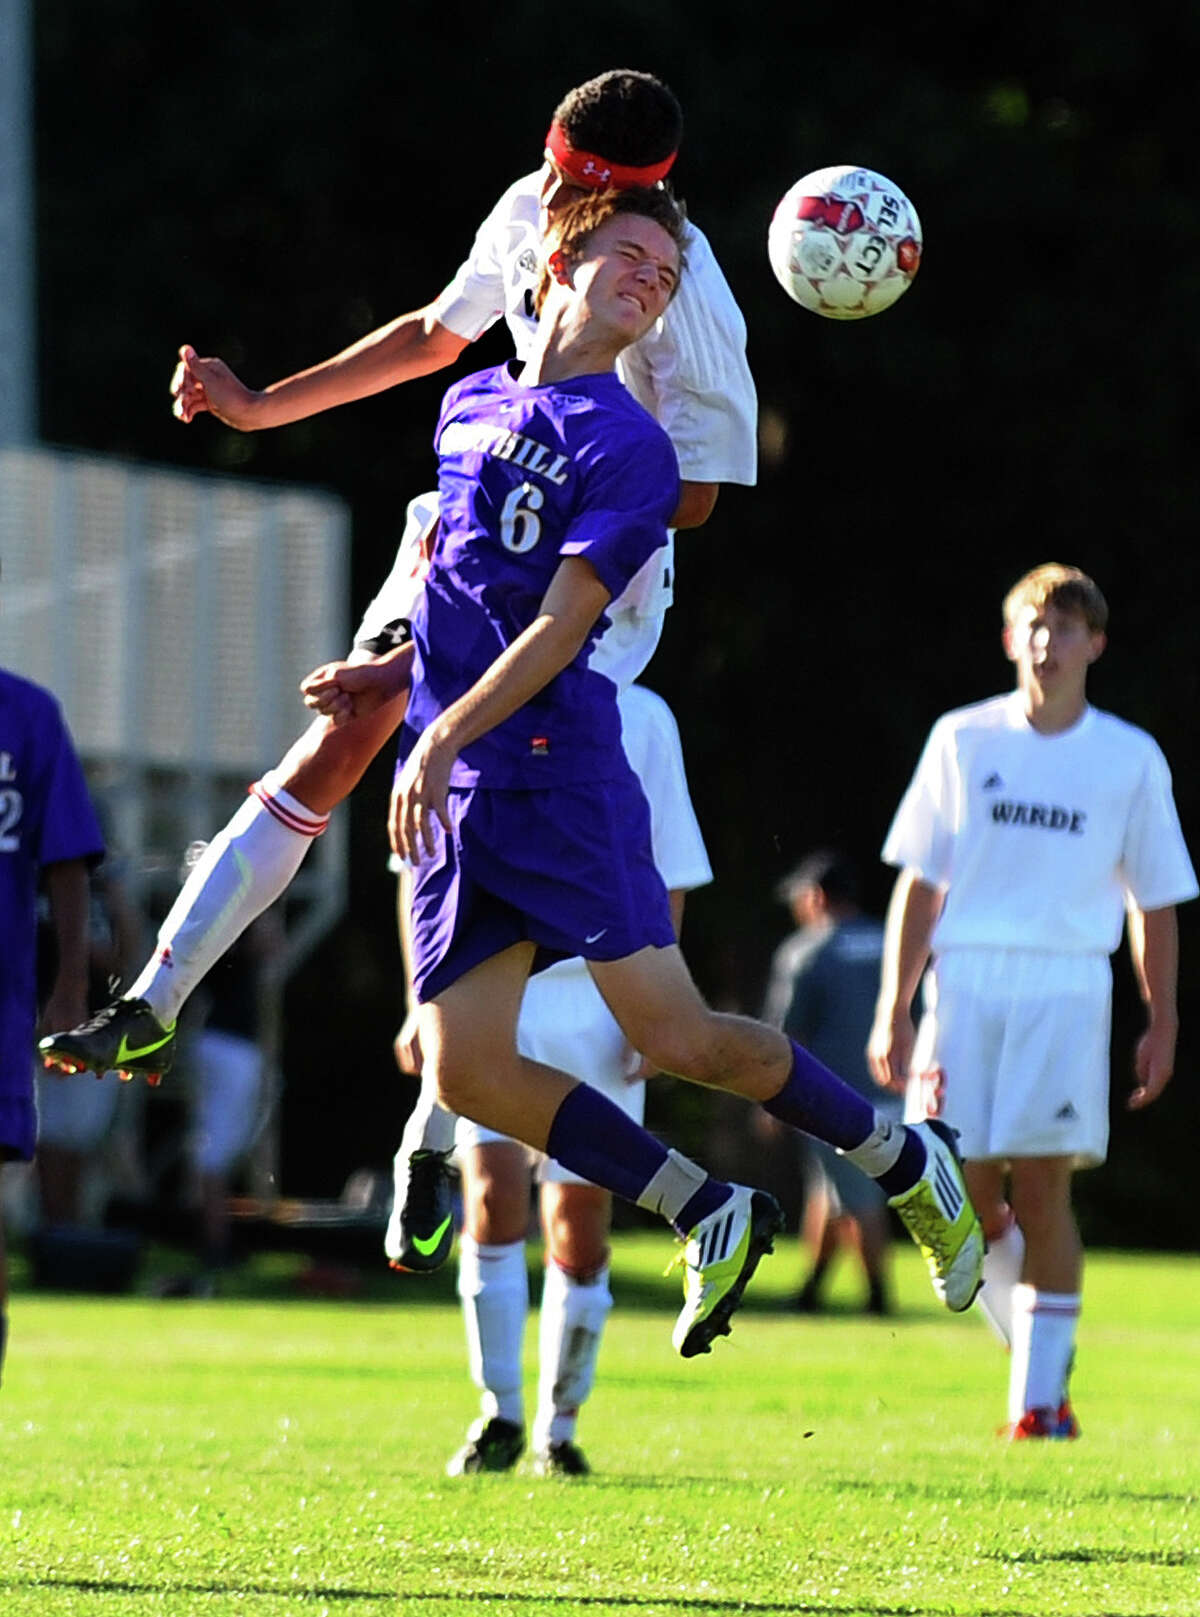 Boys soccer action between Fairfield Warde and Westhill in Fairfield, Conn. on Tuesday September 11, 2012.